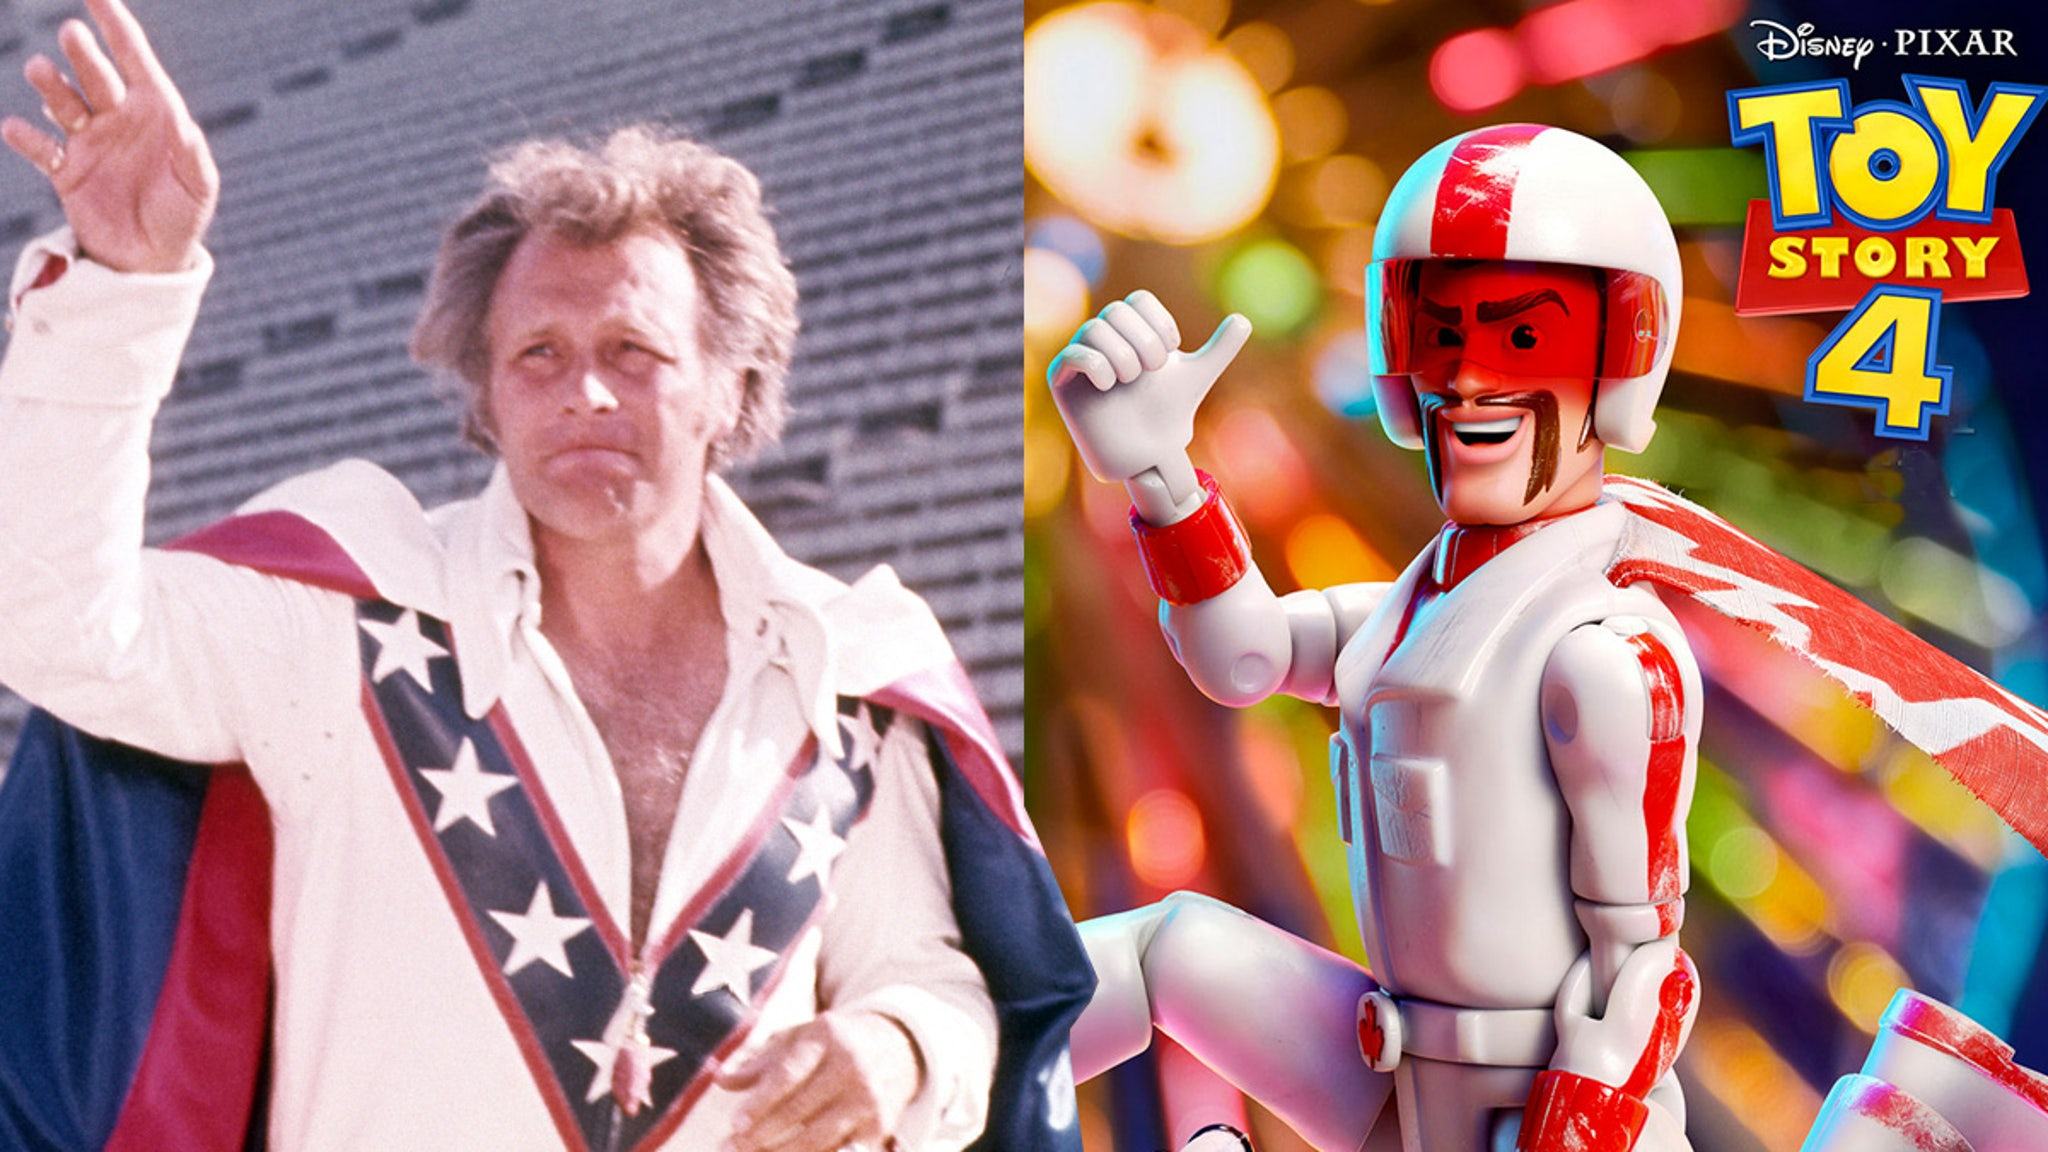 Disney & Pixar Sued Nice 'Toy Story 4' Stunt Too Bad You Ripped Off Evel Knievel!!!